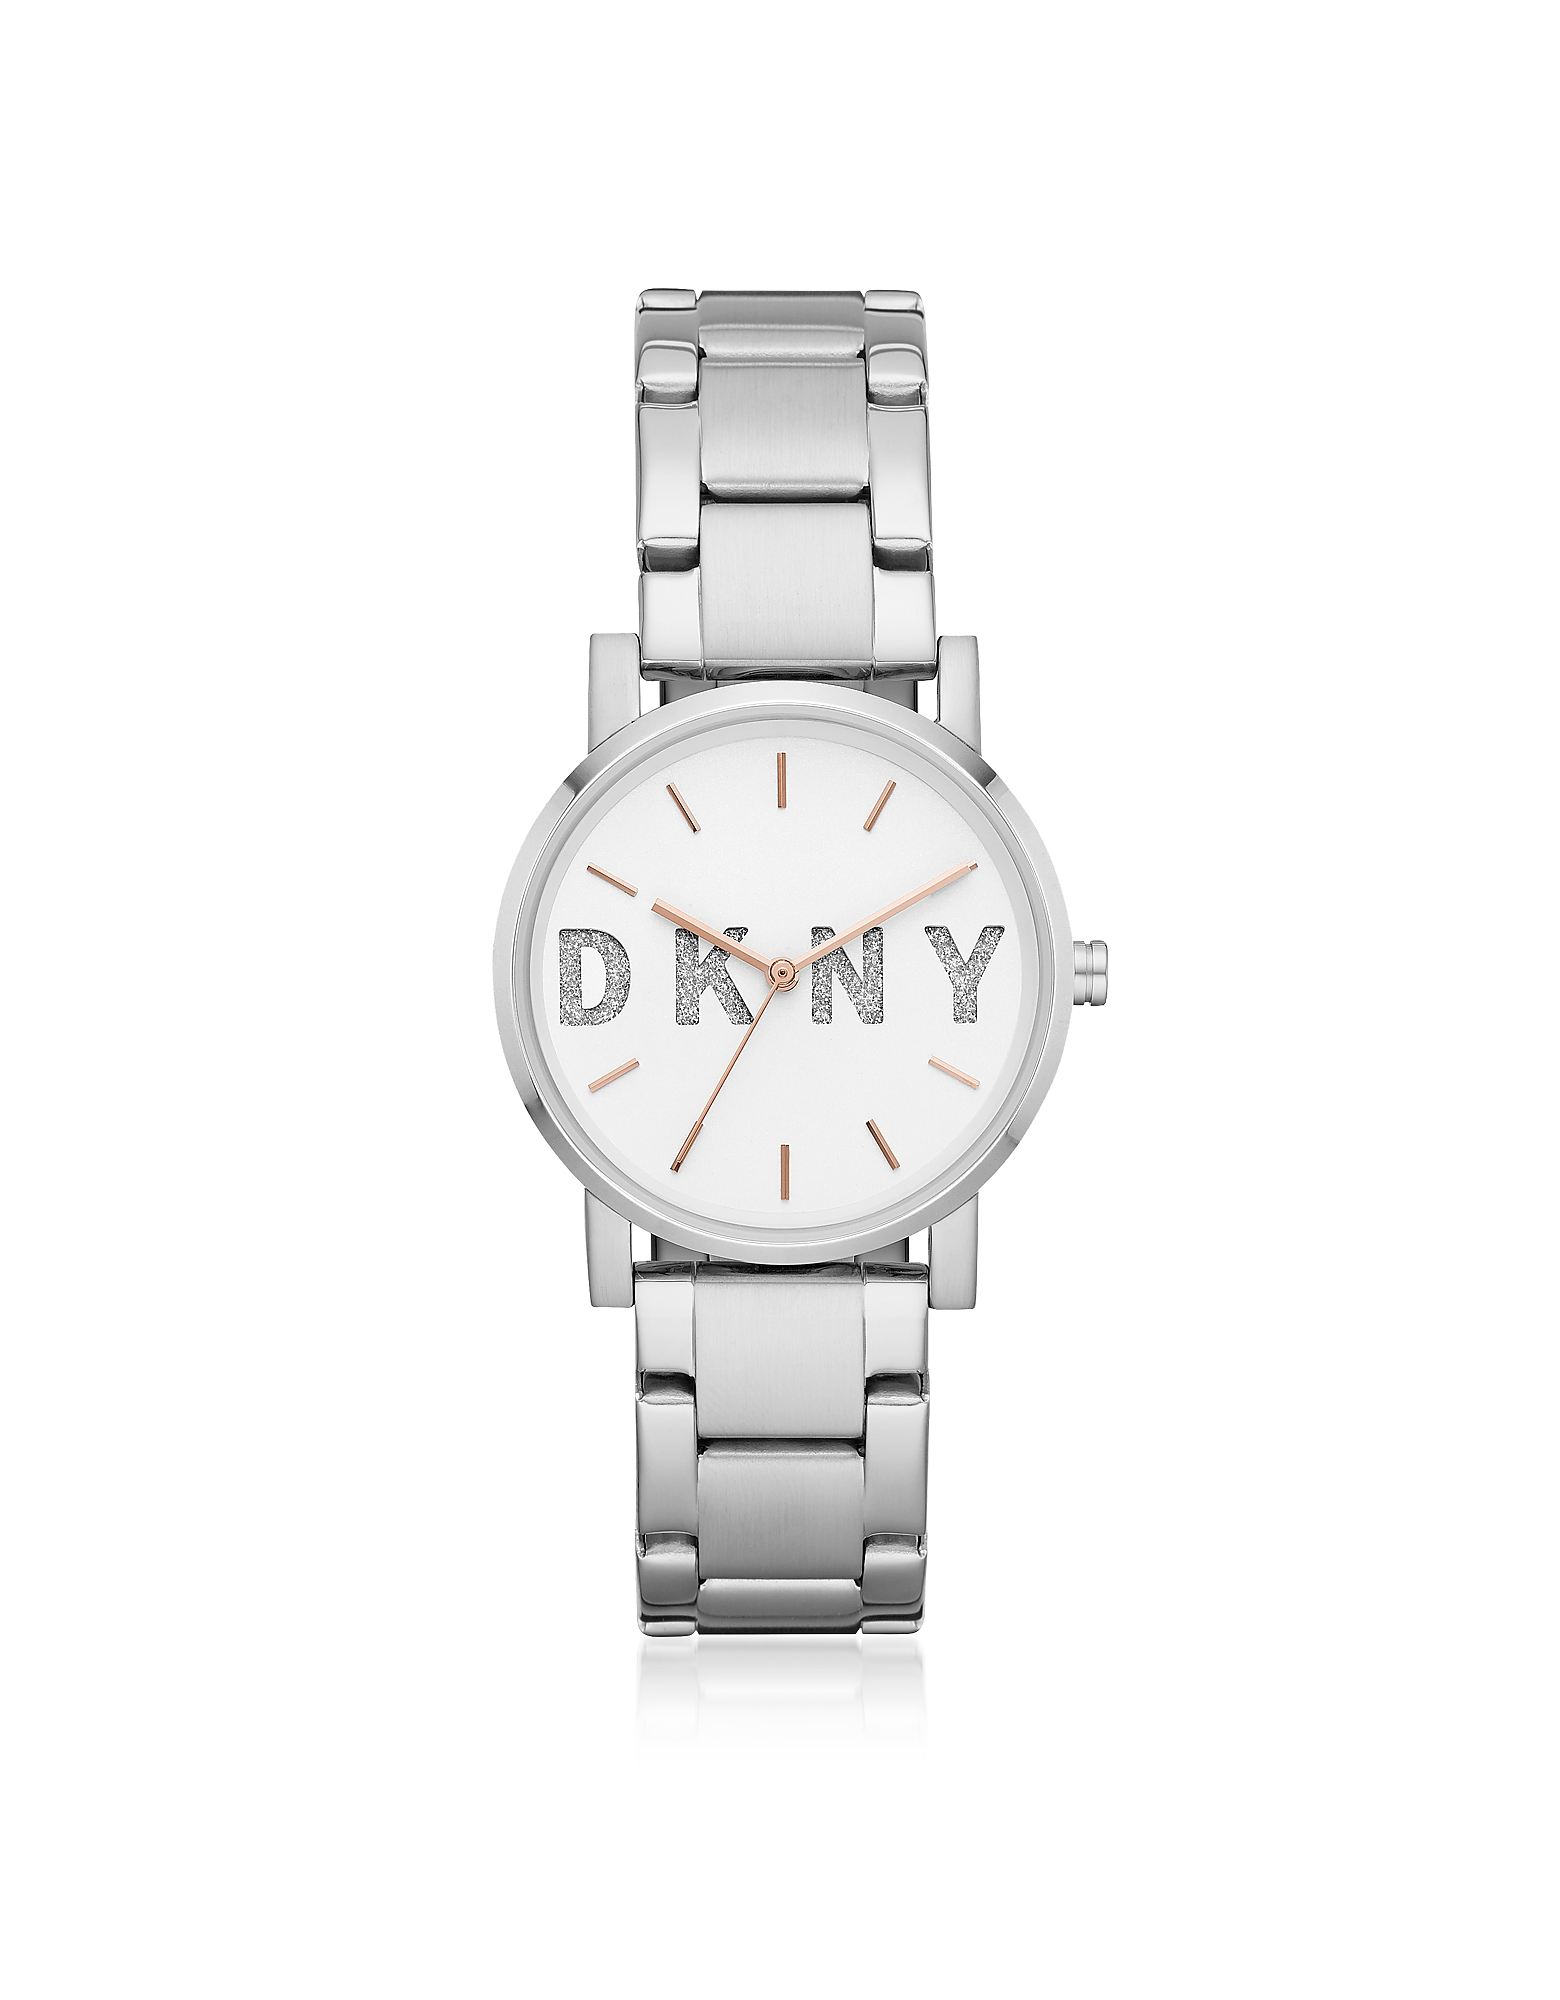 DKNY Women's Watches, NY2681 Soho Women's Watch